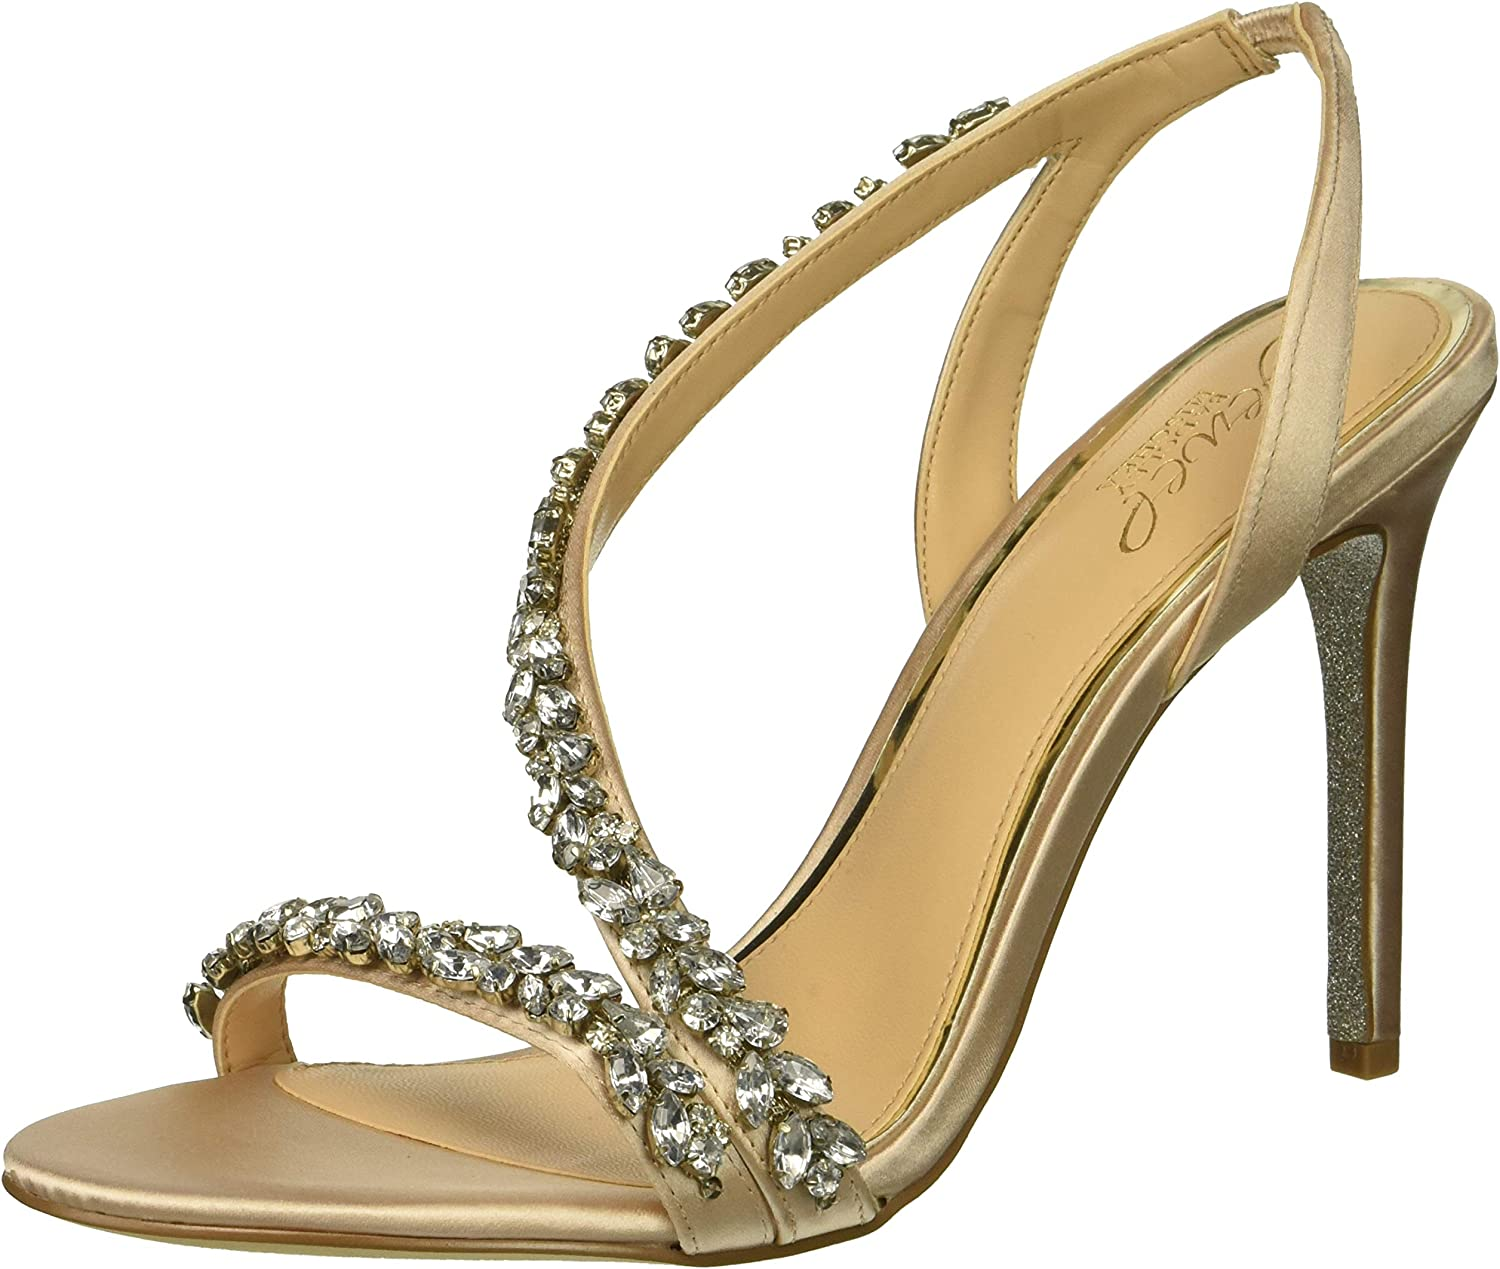 Badgley Mischka Womens Java Heeled Sandal